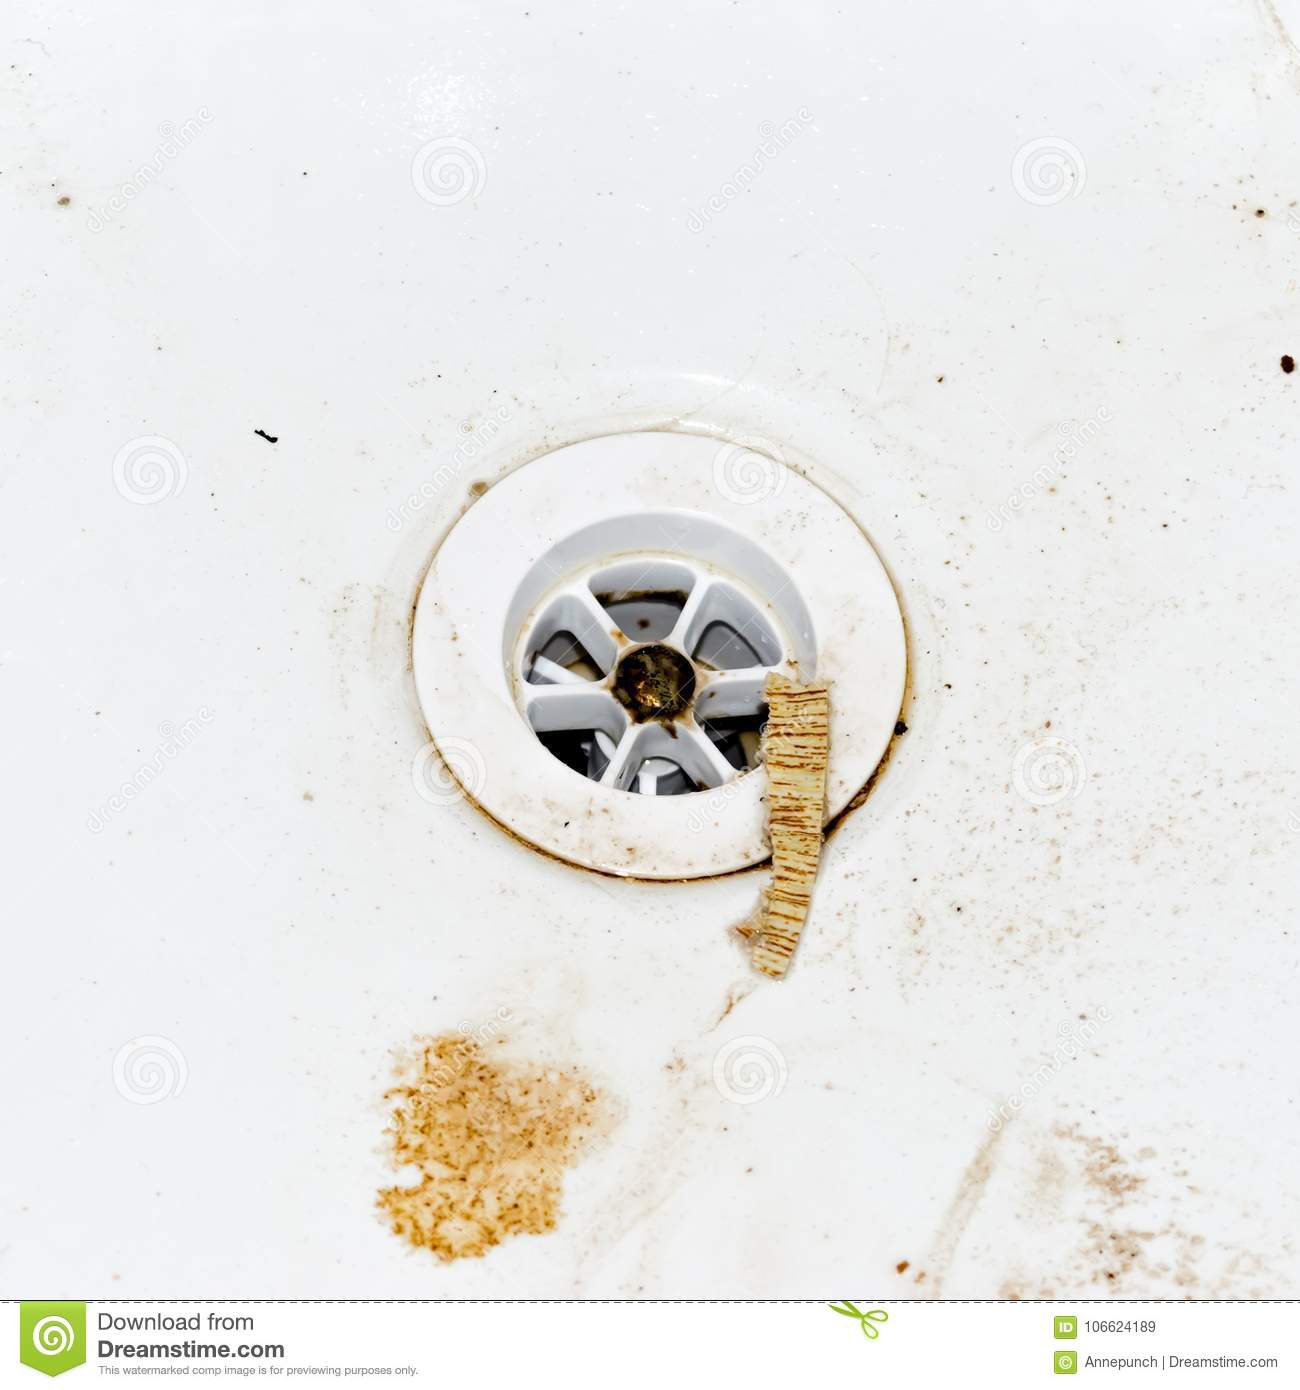 Messy Kitchen Sink Stock Photos: Dirty Sink Drain. Square Photo. Stock Image